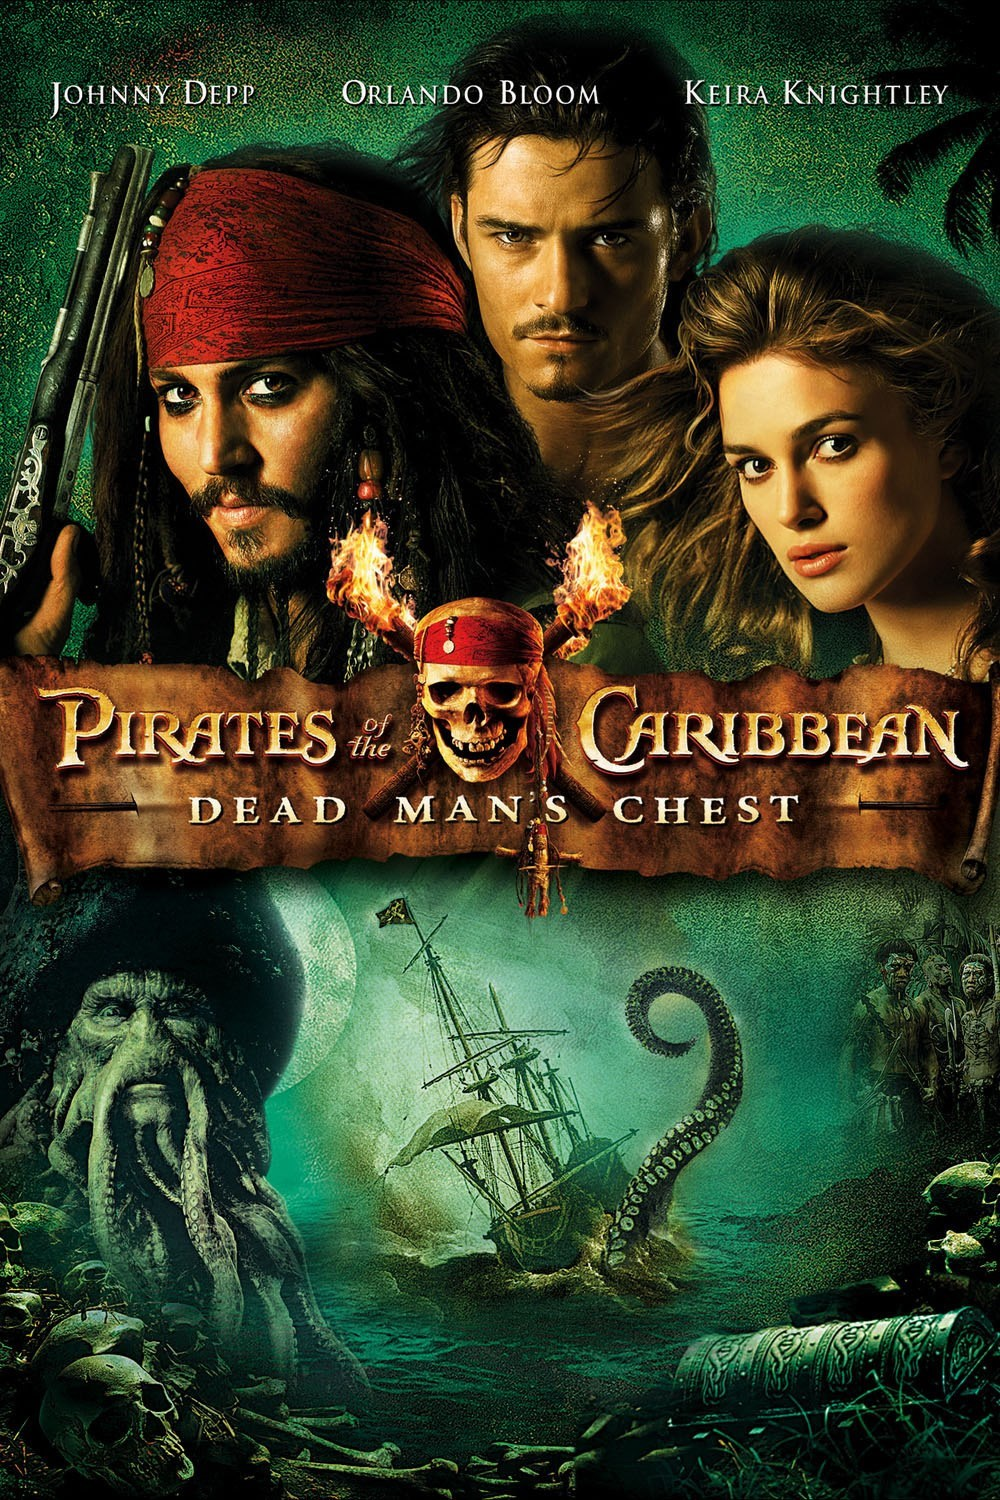 pirates-of-the-caribbean-2-dead-mans-chest.10847.jpg